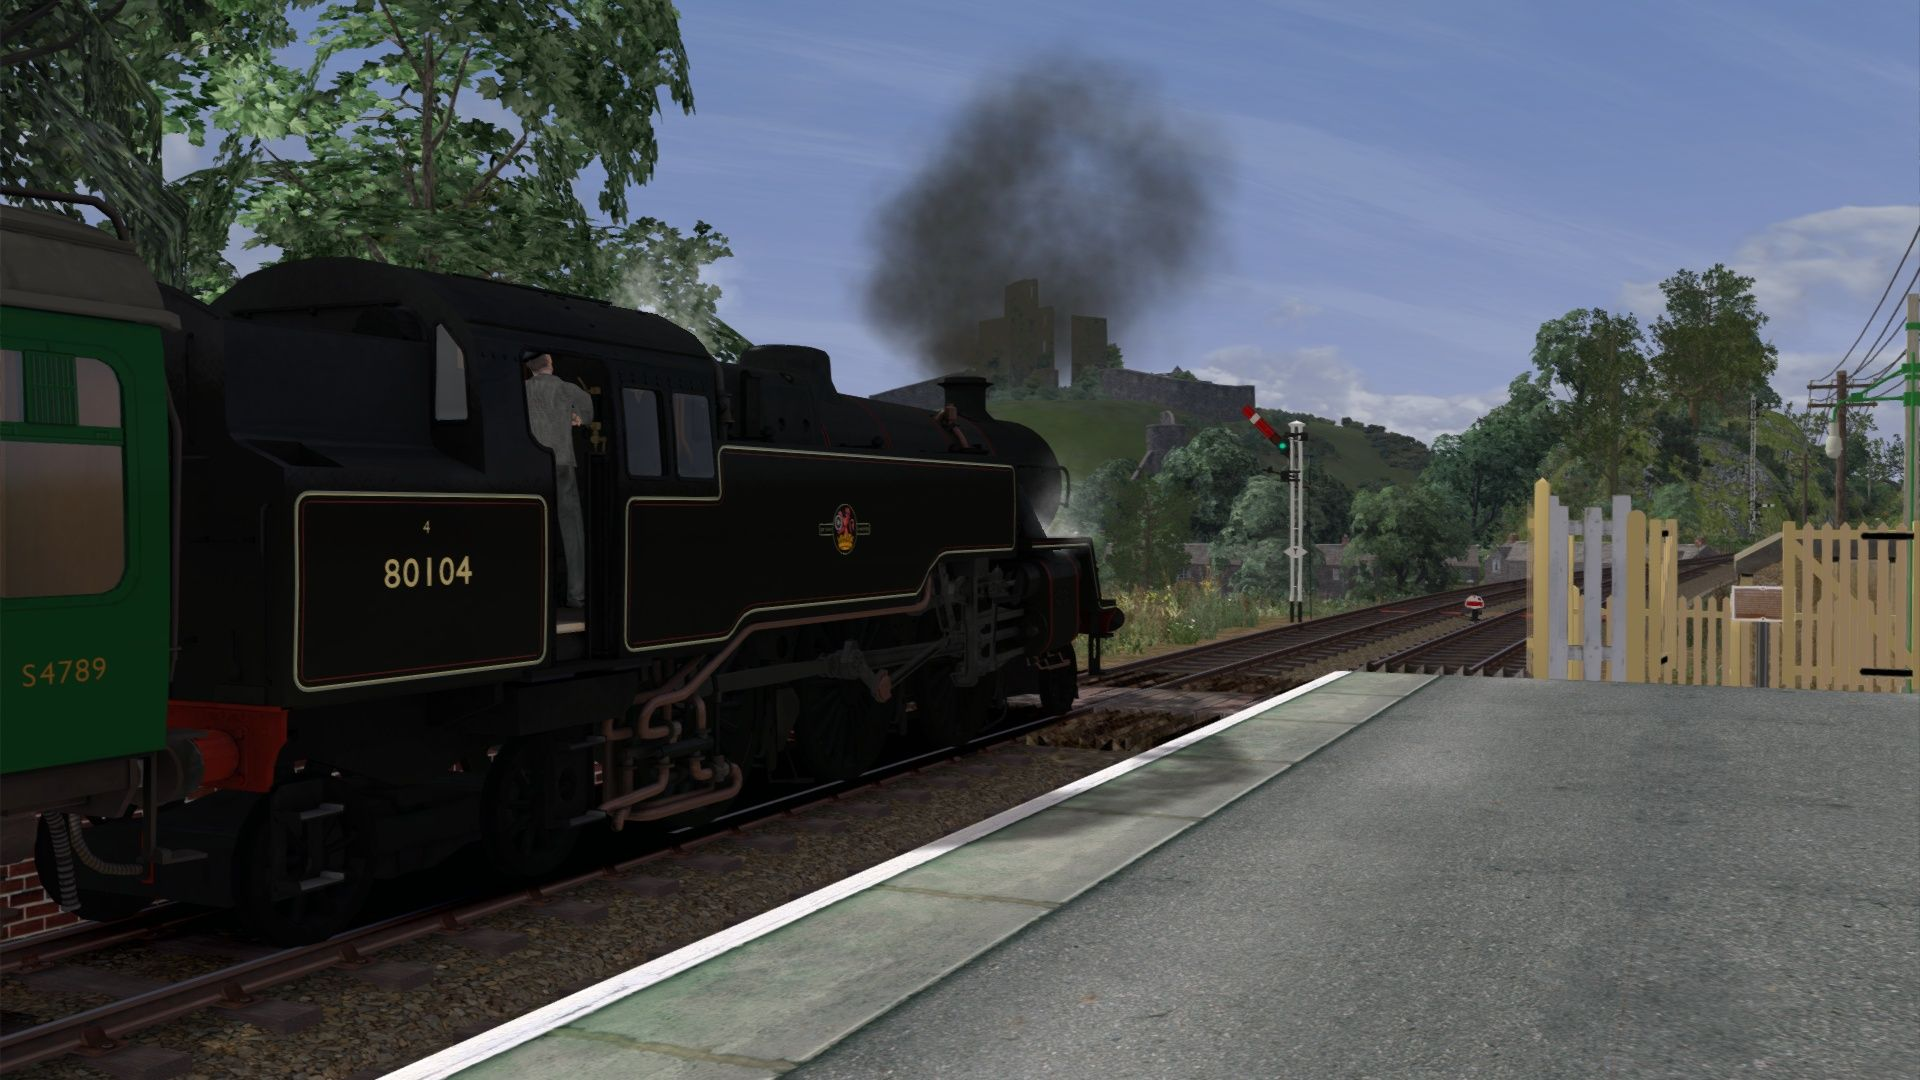 Screenshot_Swanage Railway_50.63854--2.05512_16-21-24